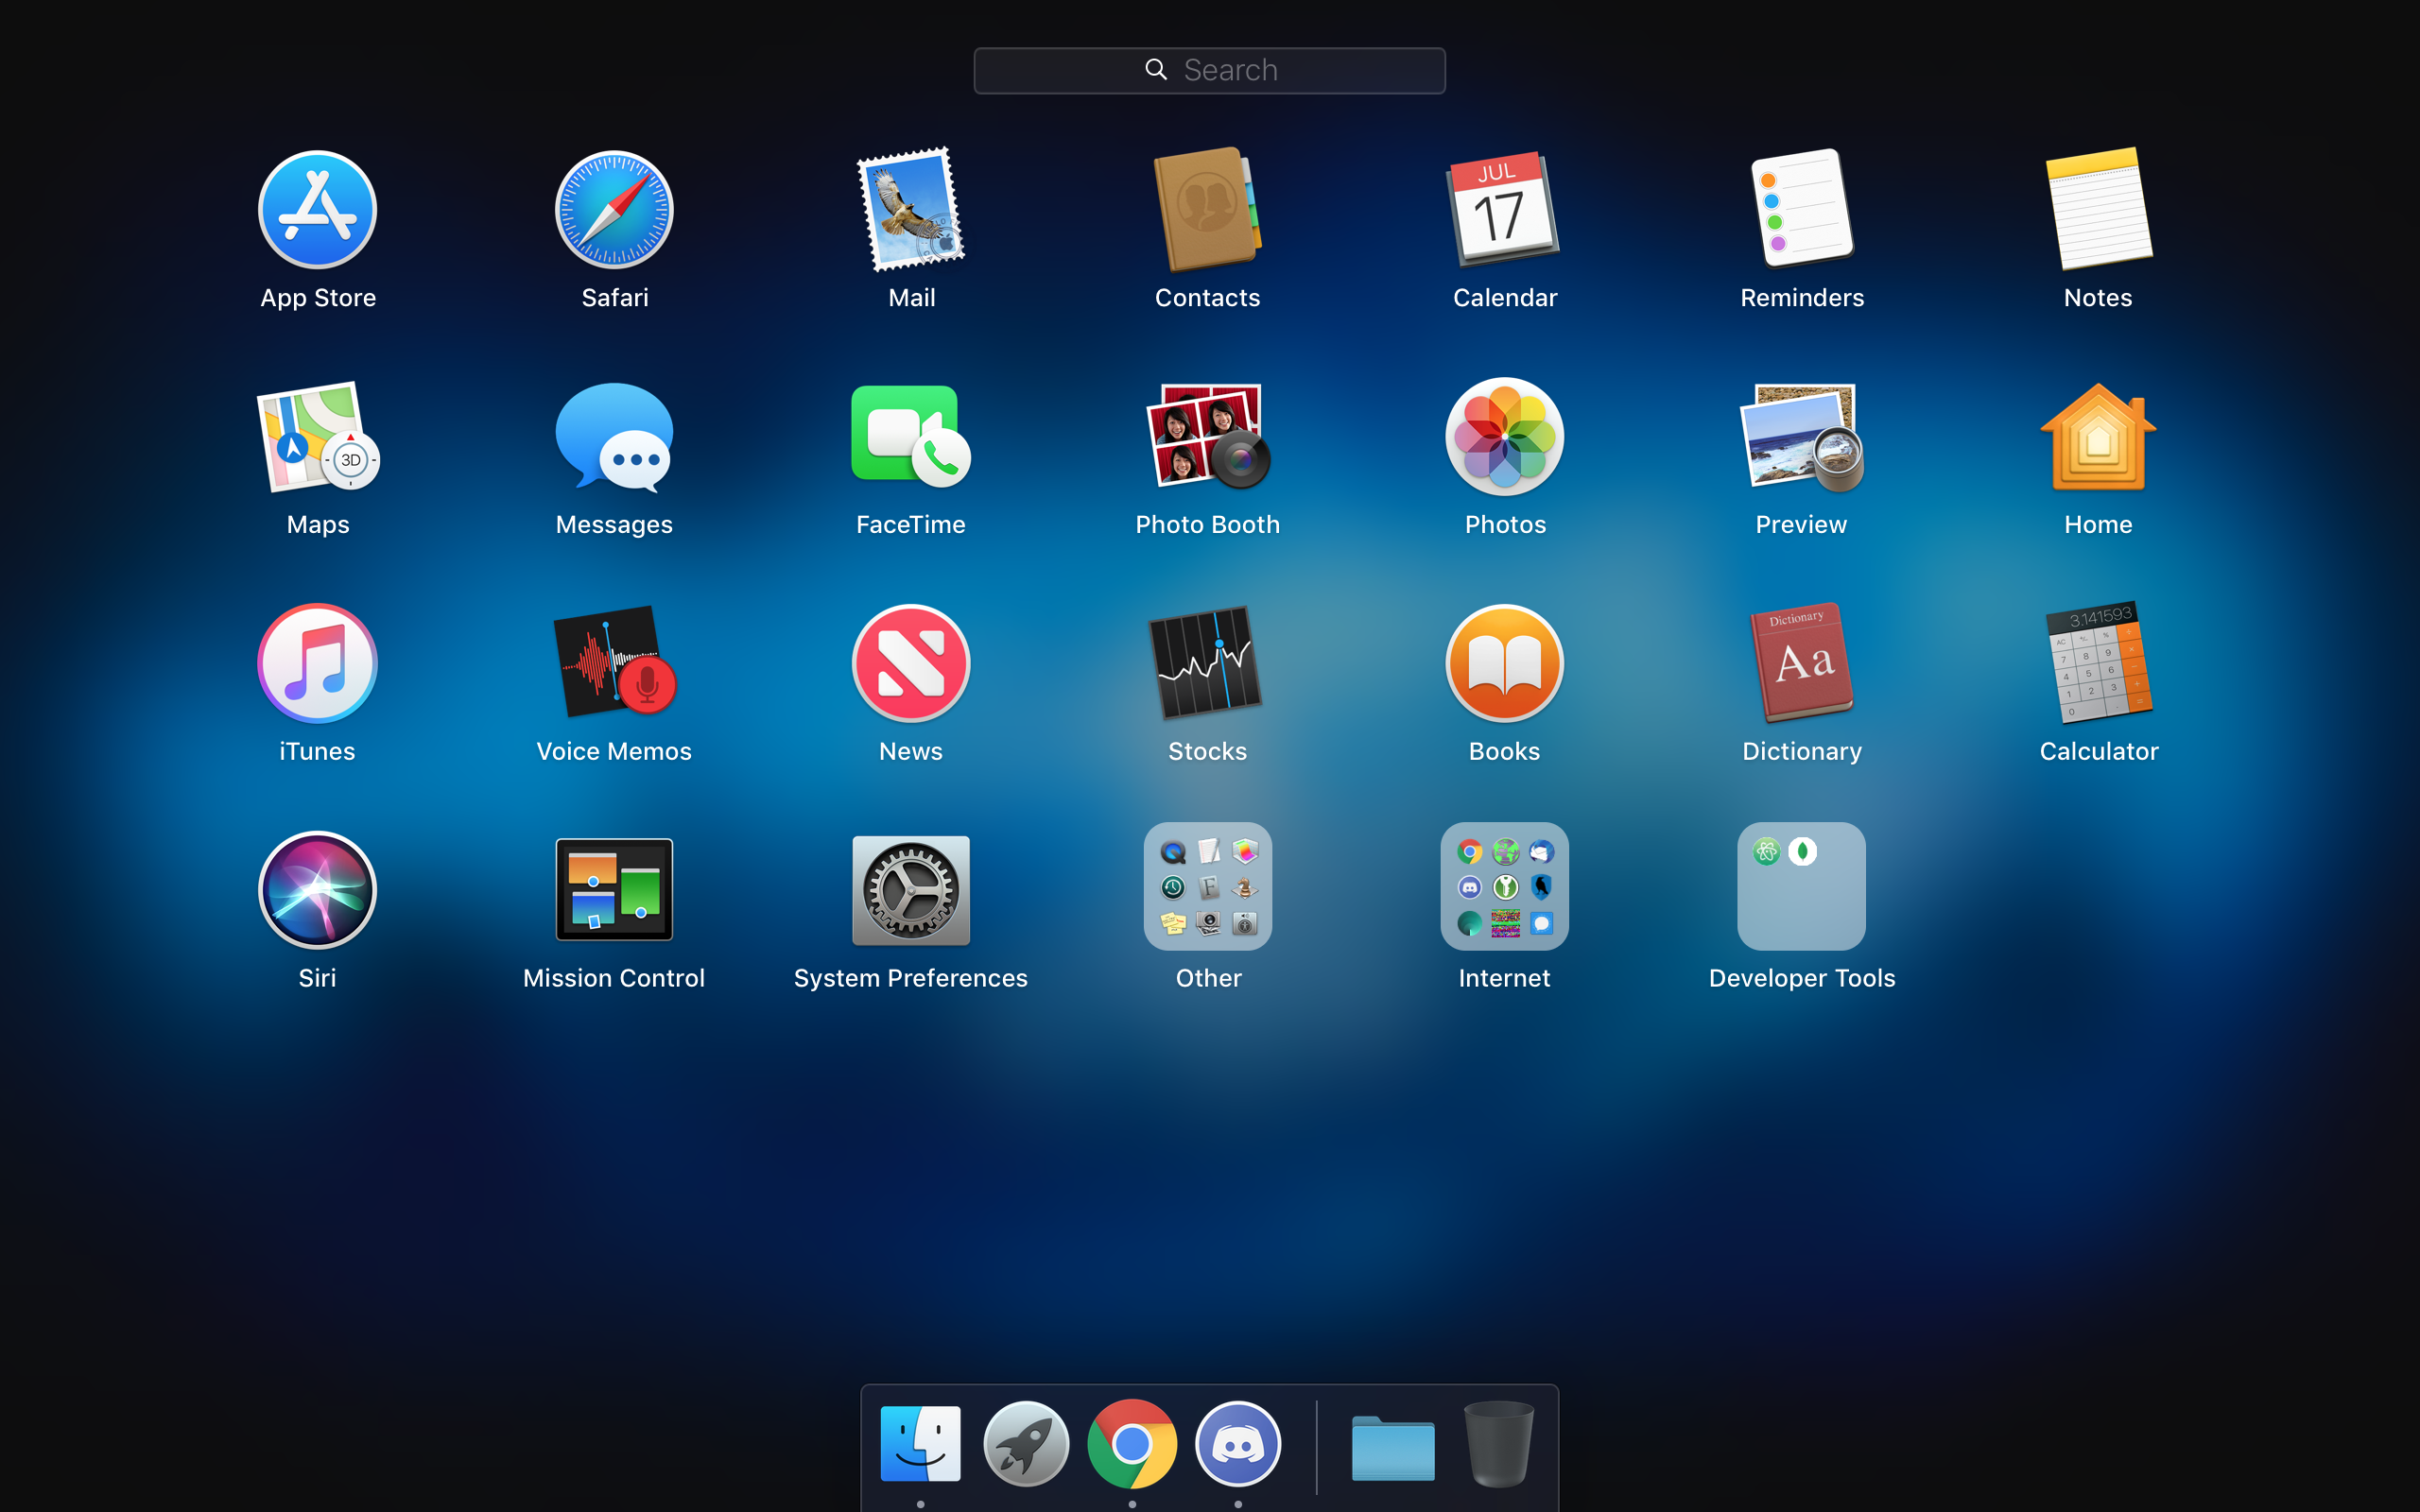 Outline Manager icon preview - inside an app folder - appears